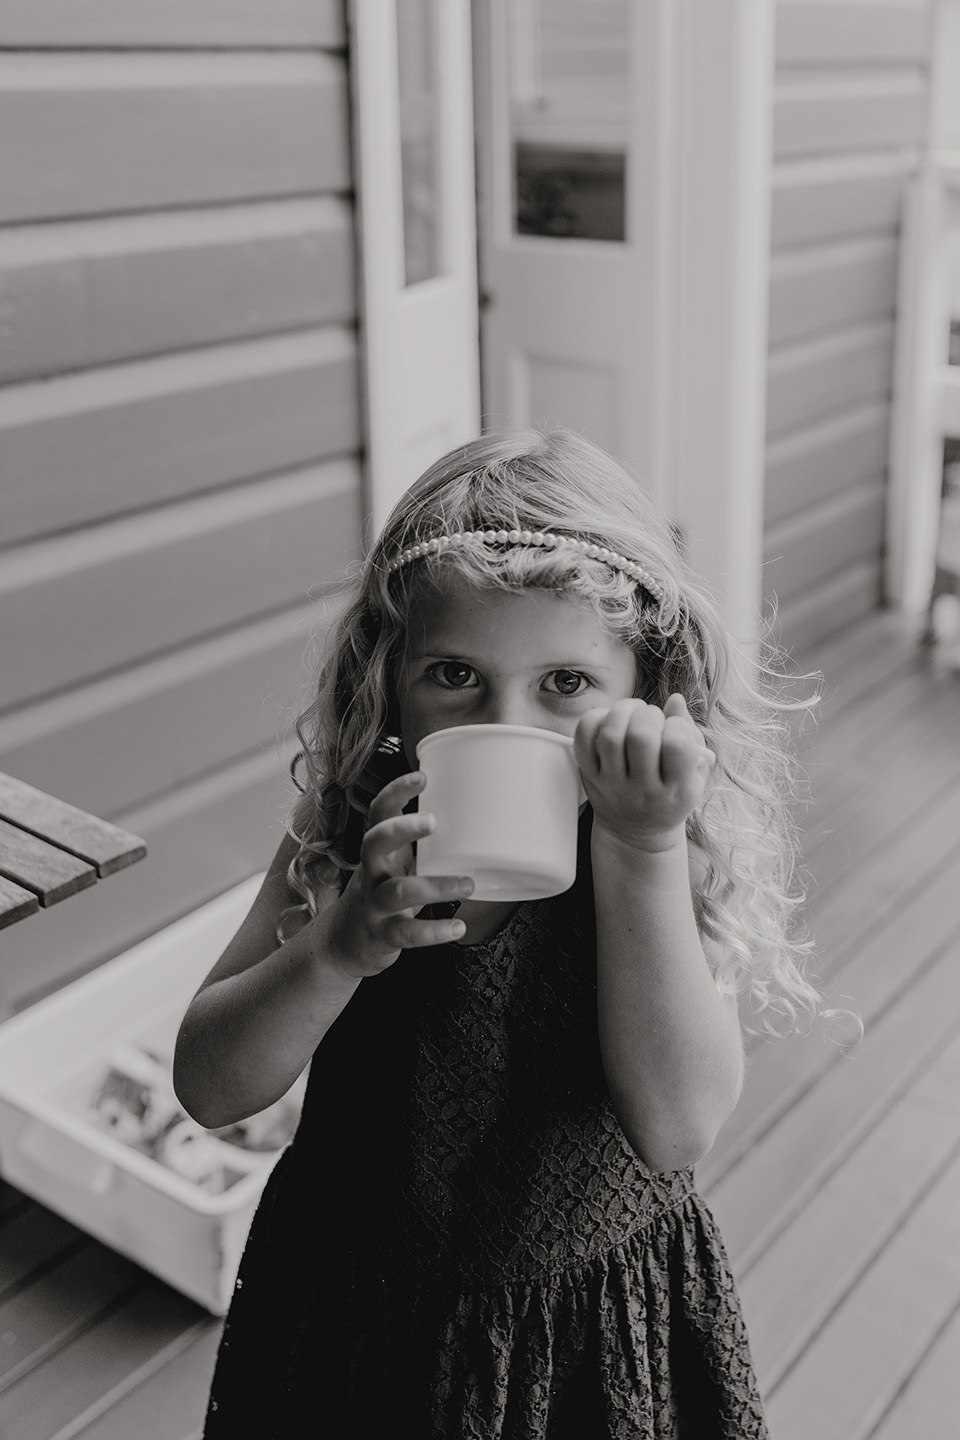 B&w image of a little girl drinking from a cup, children, family photography